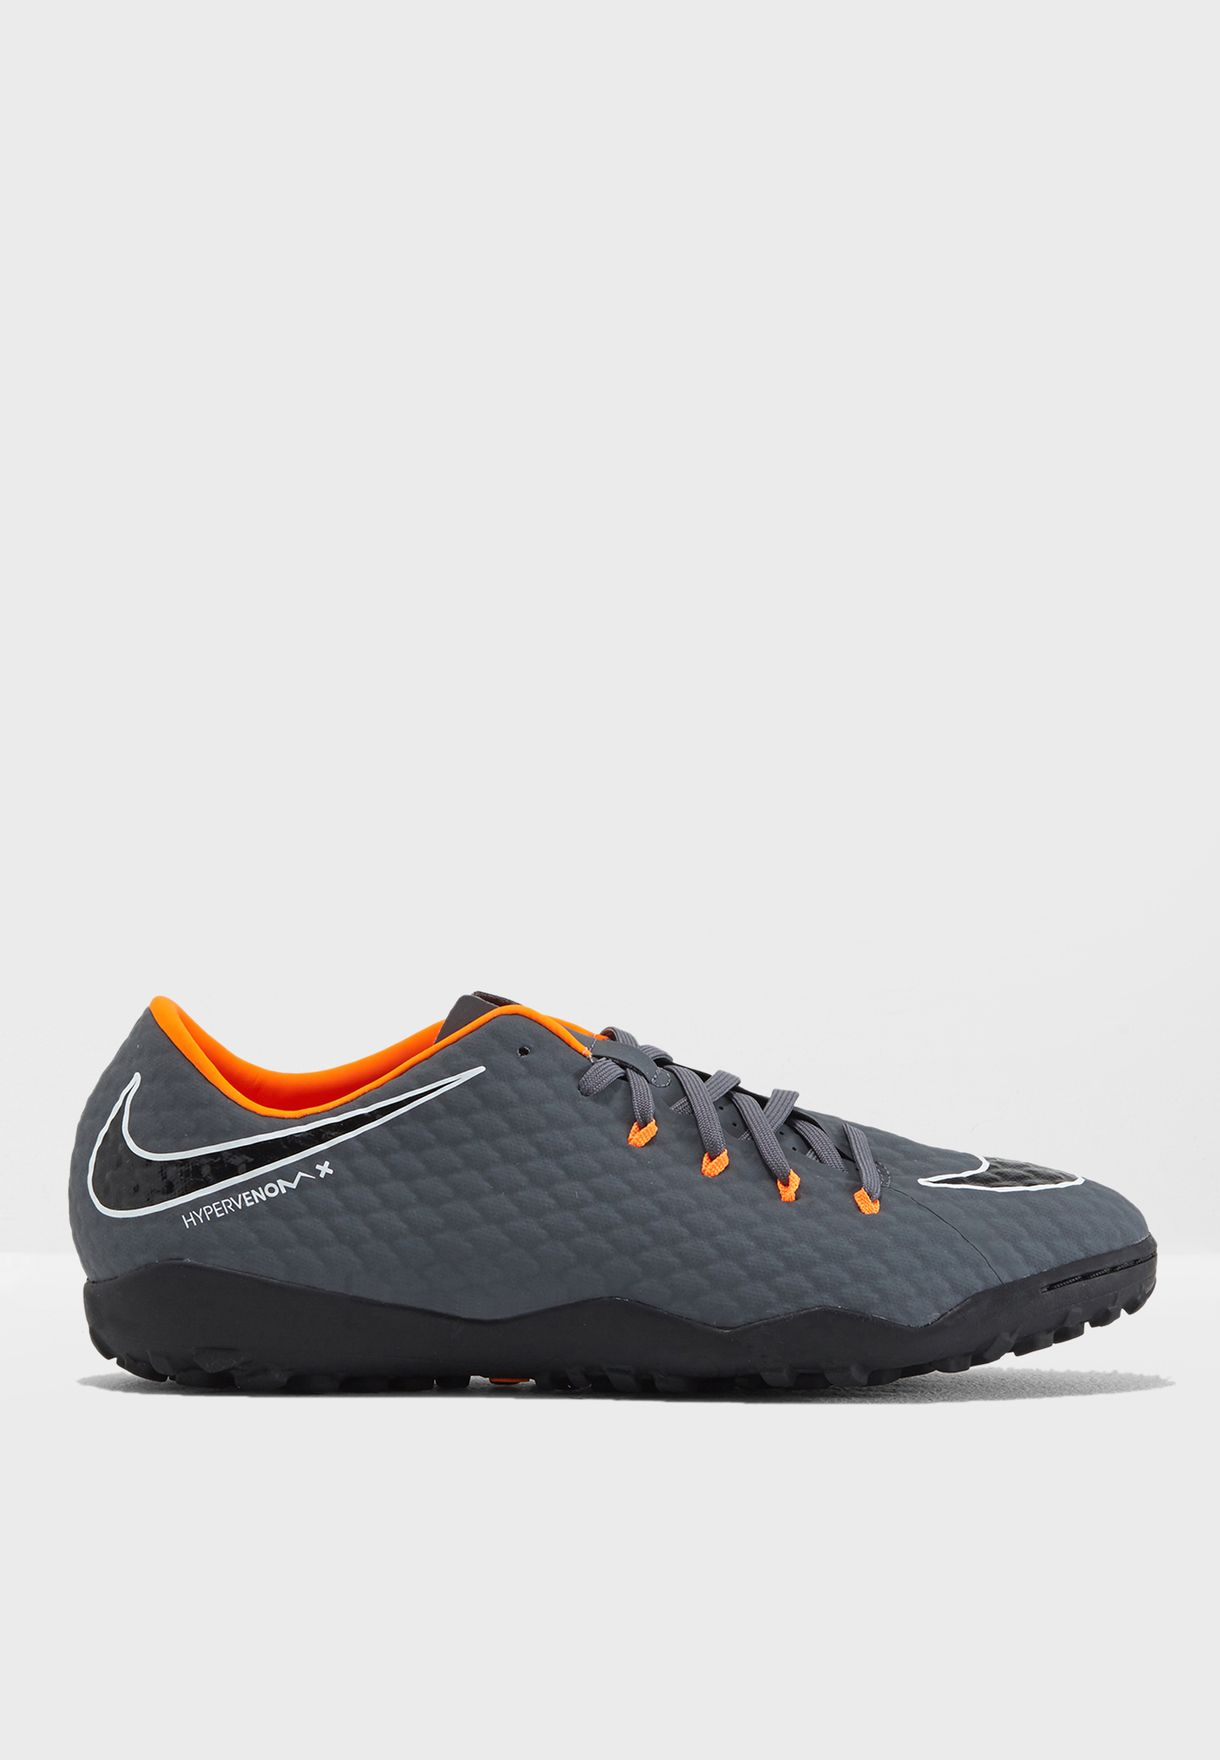 low priced b3dd6 04ea2 Hypervenom Phantomx 3 Academy TF